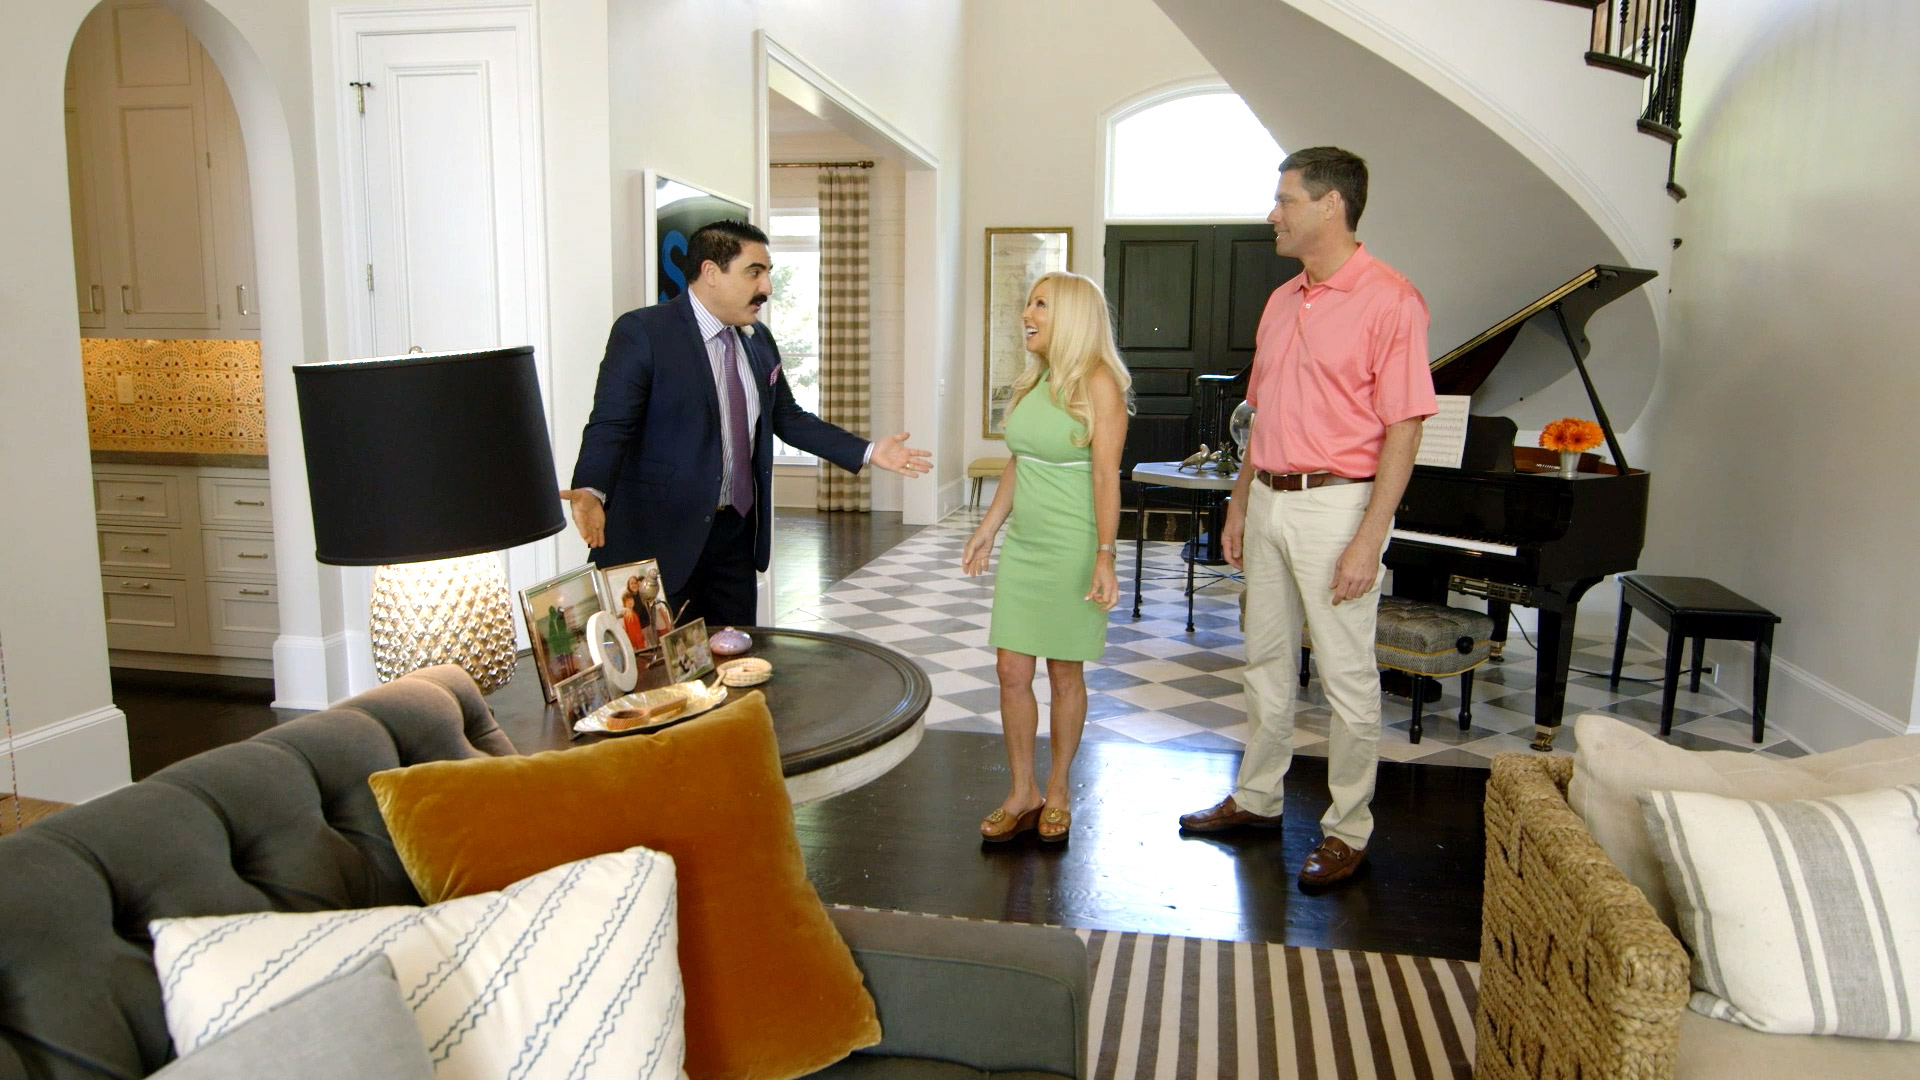 Watch Reza Shows A Nate Berkus Home Oprah S Designer Yours Mine Or Ours Season 1 Episode 9 Video